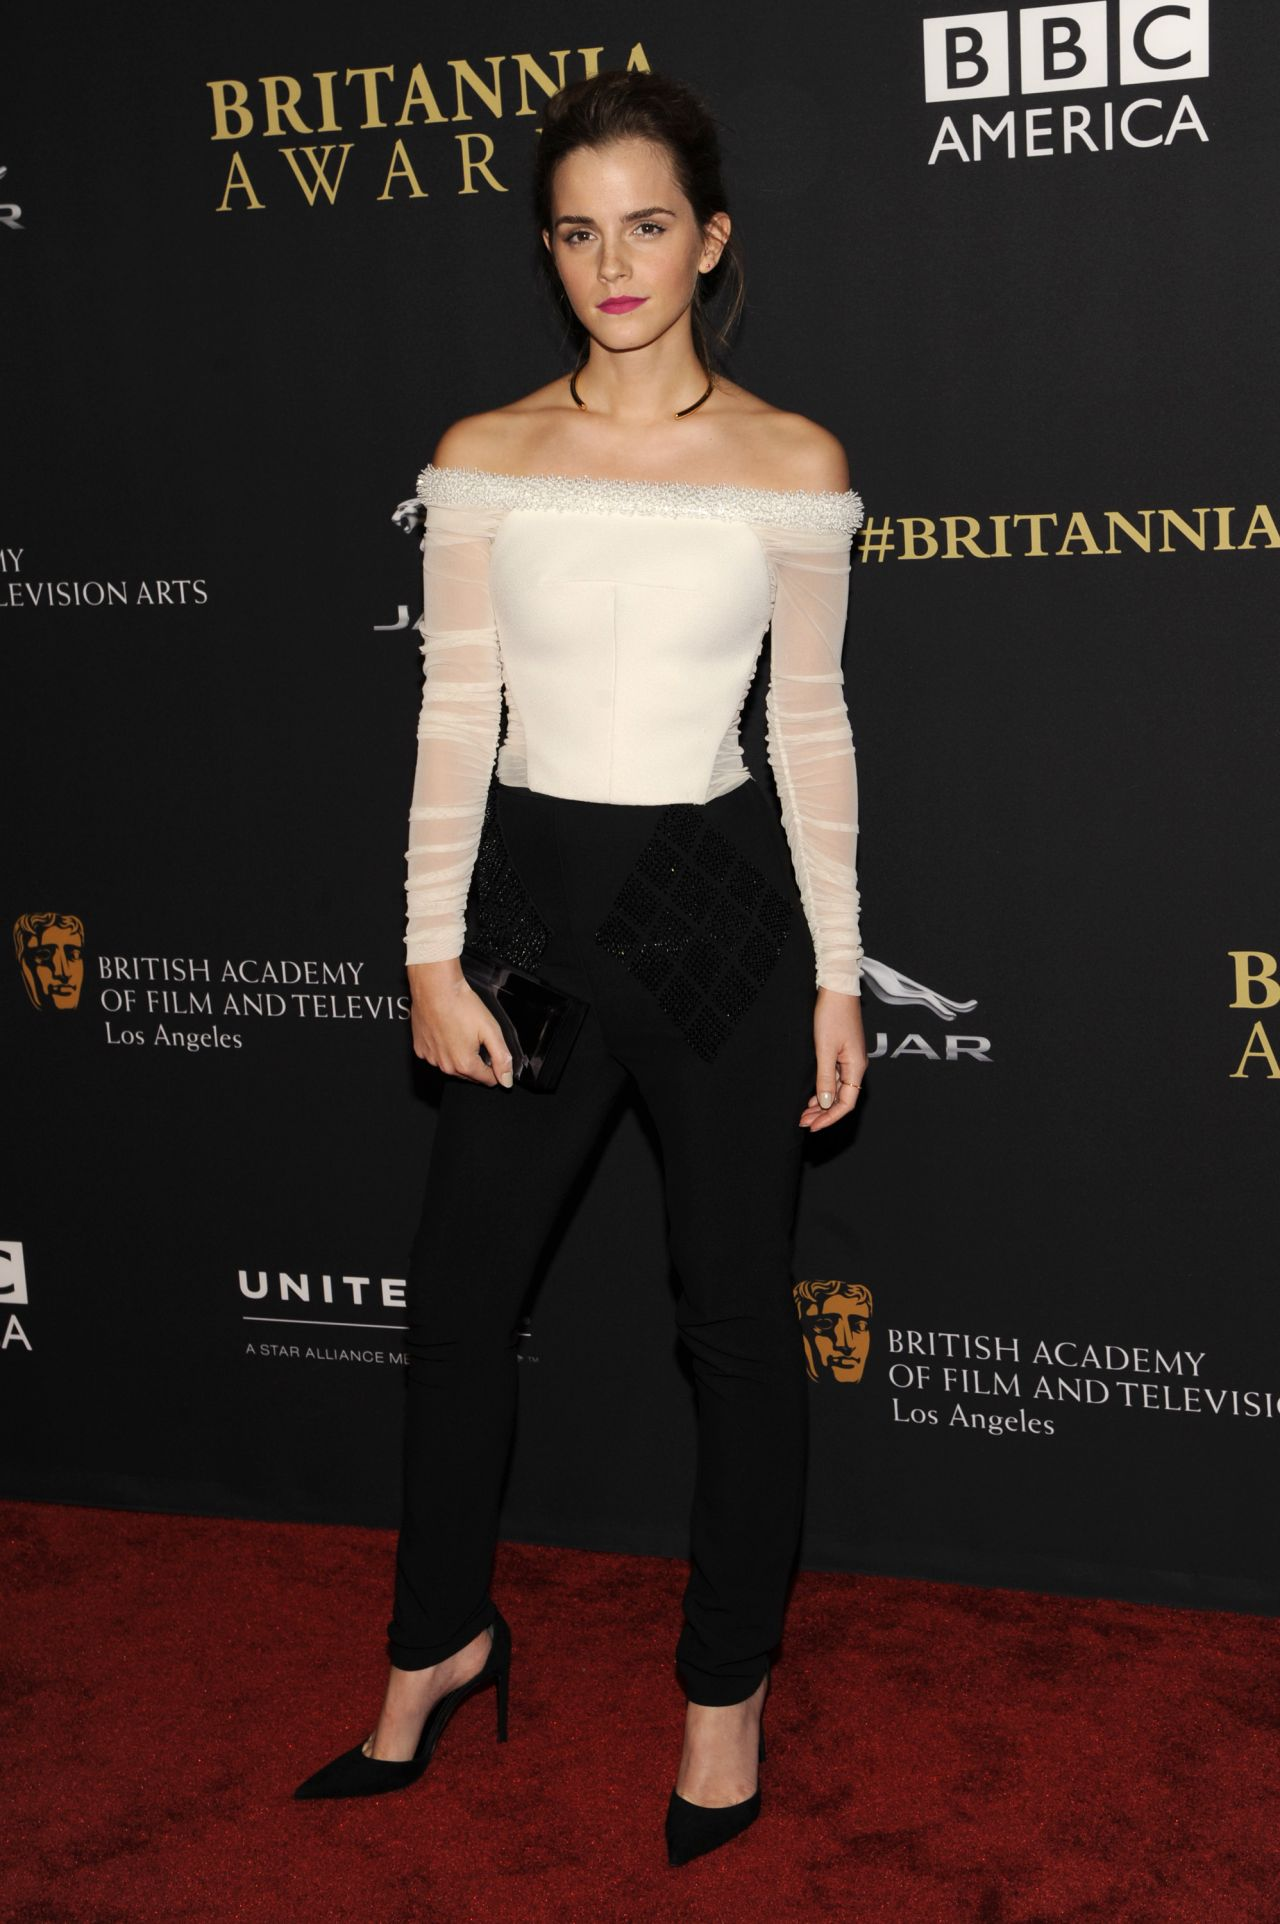 emma-watson-2014-bafta-los-angeles-jaguar-britannia-awards_1